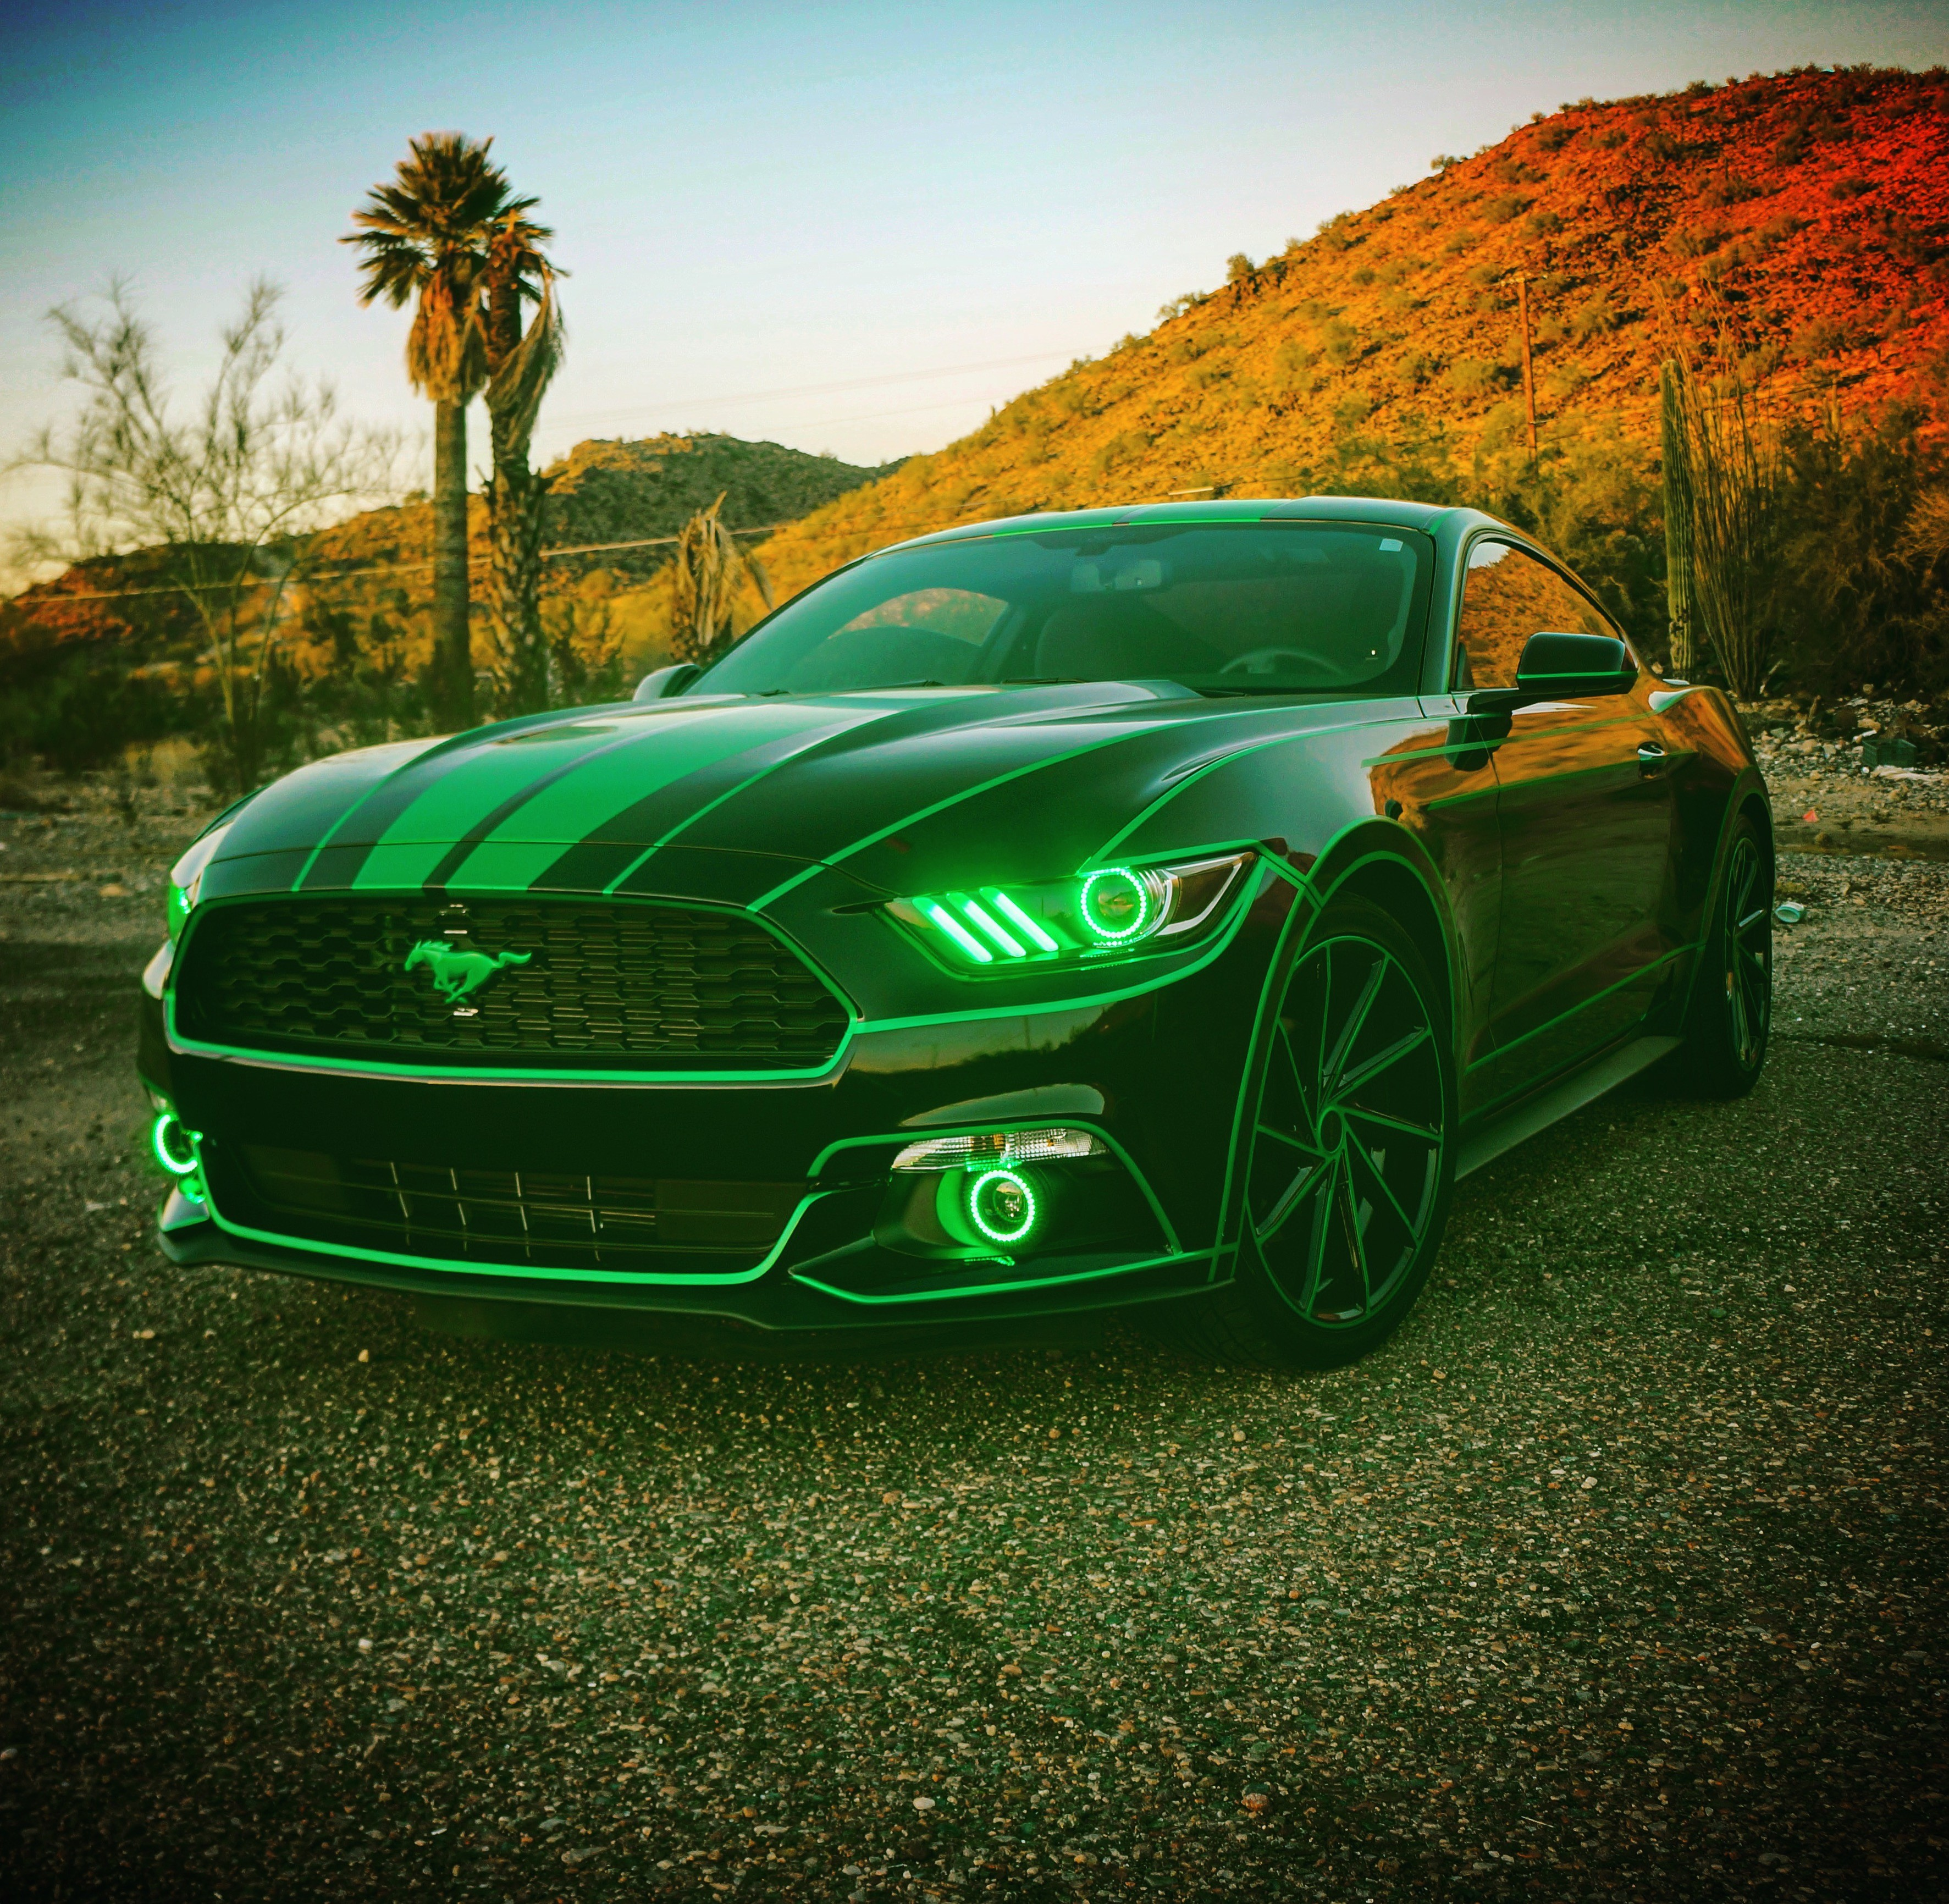 mustang ford gt tron speed machine dating concept gt500 tuning shelby mustangs autoevolution evos prank krasser inspired fast tuningblog future